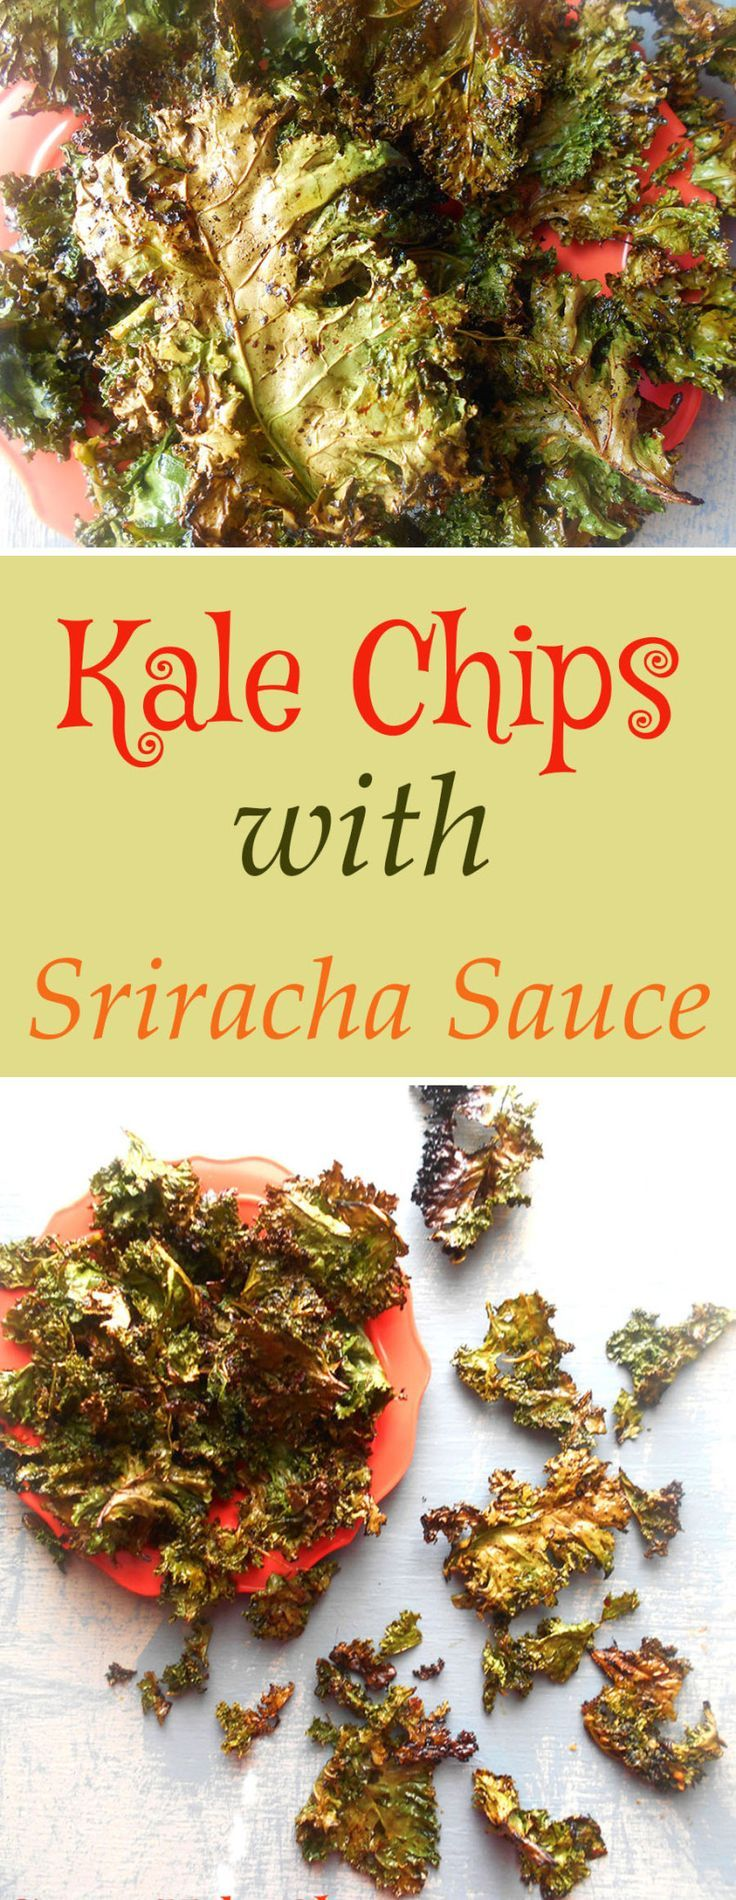 Spicy Kale Chips recipe made with Sriracha sauce. Quick snack idea that is also a healthy snack. Instead of snacking on potato chips, try this healthy chips